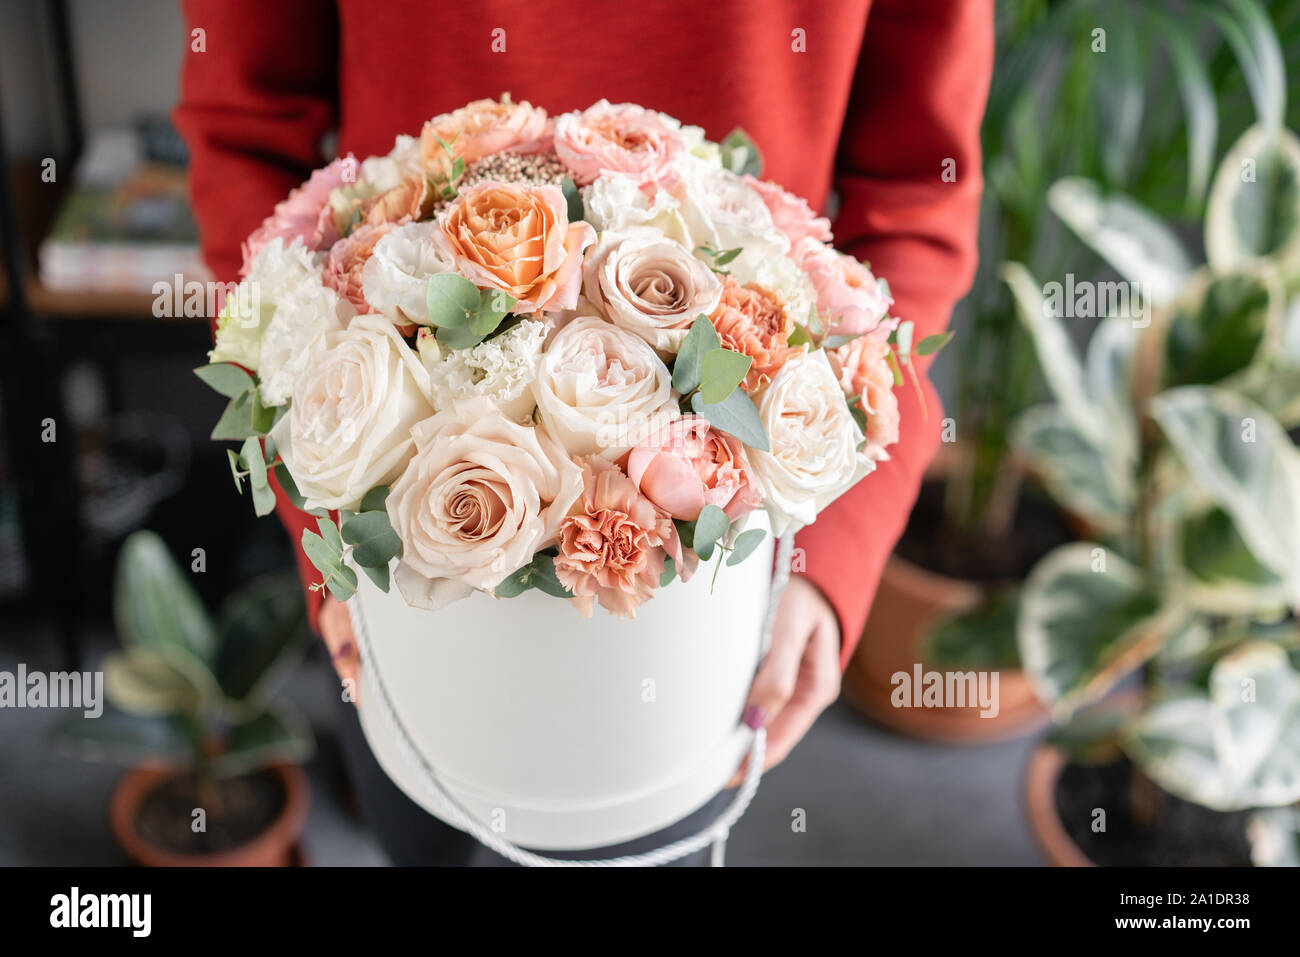 Cute Floral Arrangement Of Mixed Flowers In Woman Hand Round Box The Work Of The Florist At A Flower Shop Delicate Pastel Color Fresh Cut Flower Stock Photo Alamy